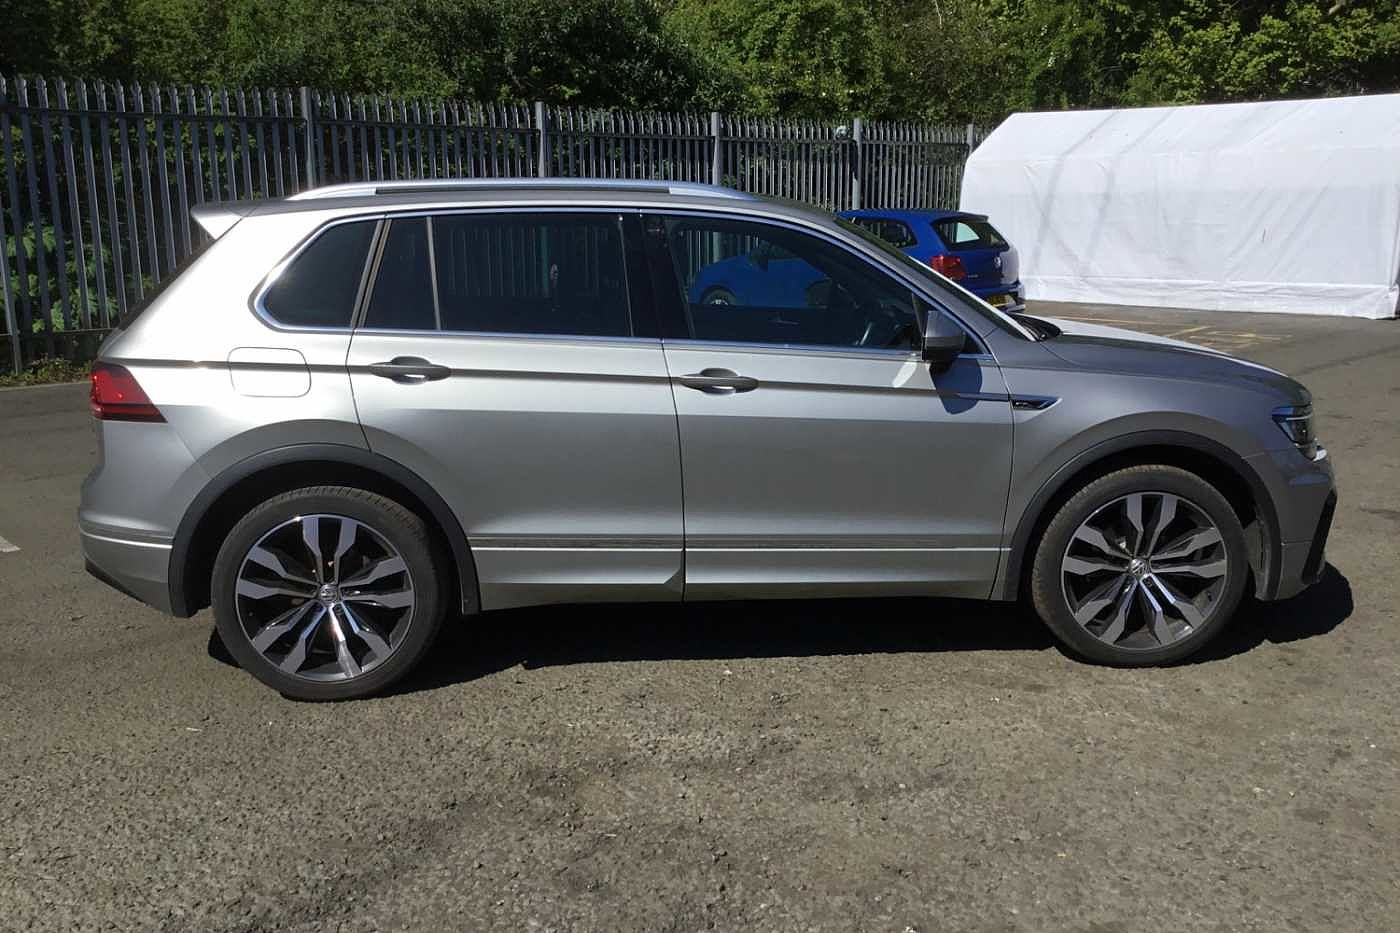 Volkswagen Tiguan for sale